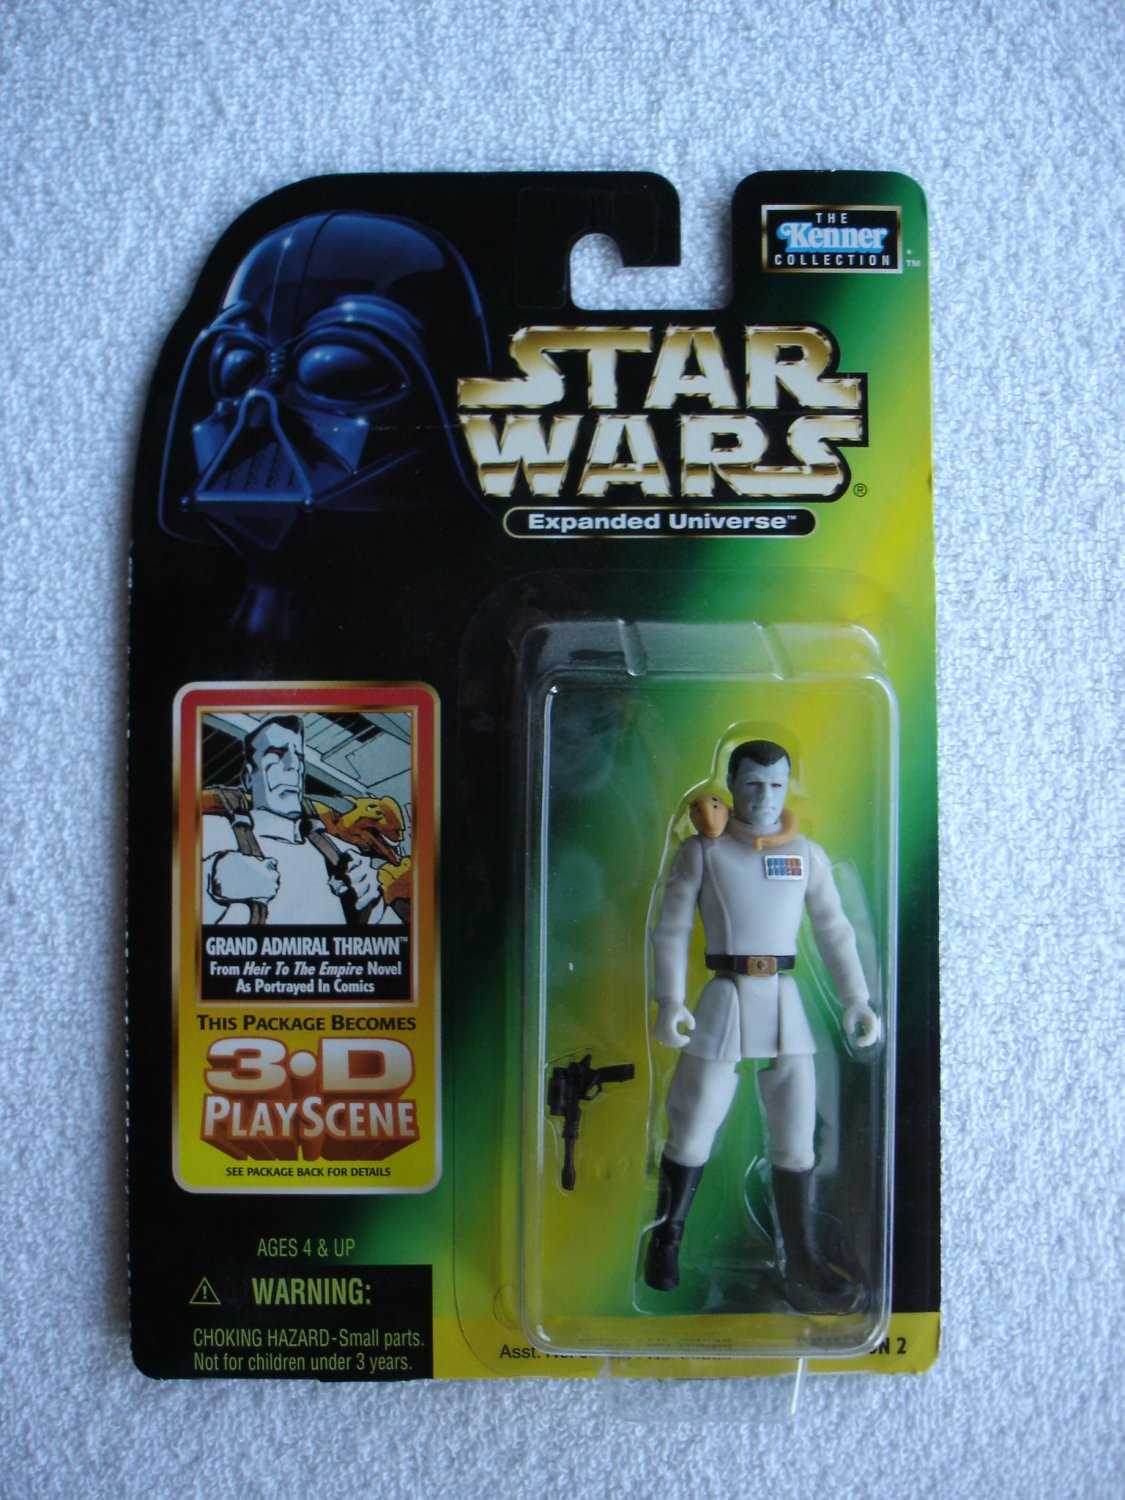 Star Wars Expanded Universe Grand Admiral Thrawn